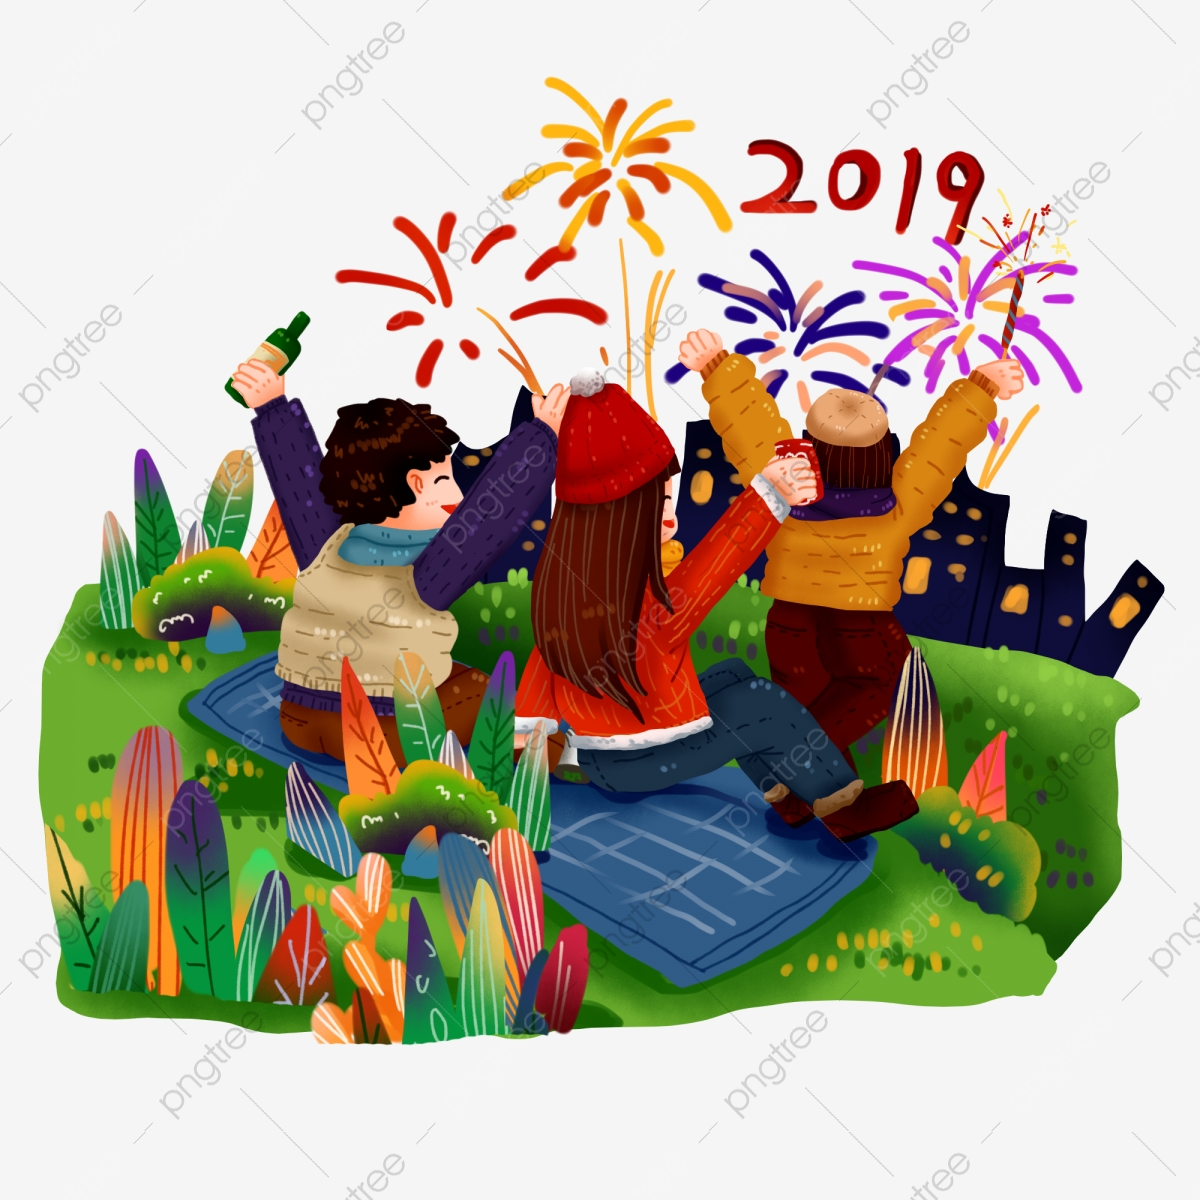 2019 happy new year happy new year new year party festive atmosphere watch fireworks city gathering png transparent clipart image and psd file for free download https pngtree com freepng 2019 happy new year happy new year new year party 3954054 html